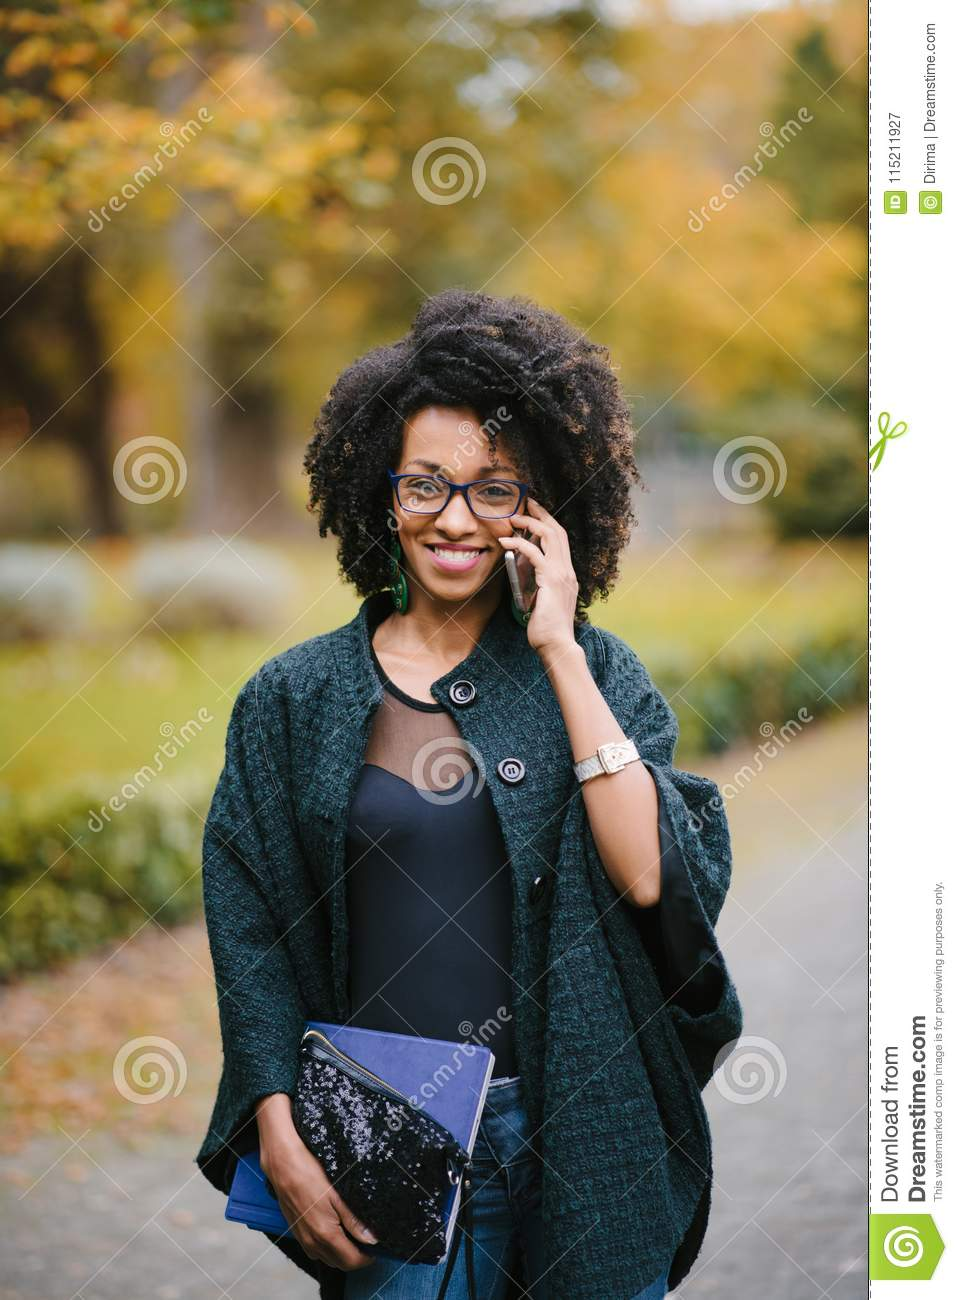 Happy Black Woman During A Mobile Phone Call In Autumn Stock Image